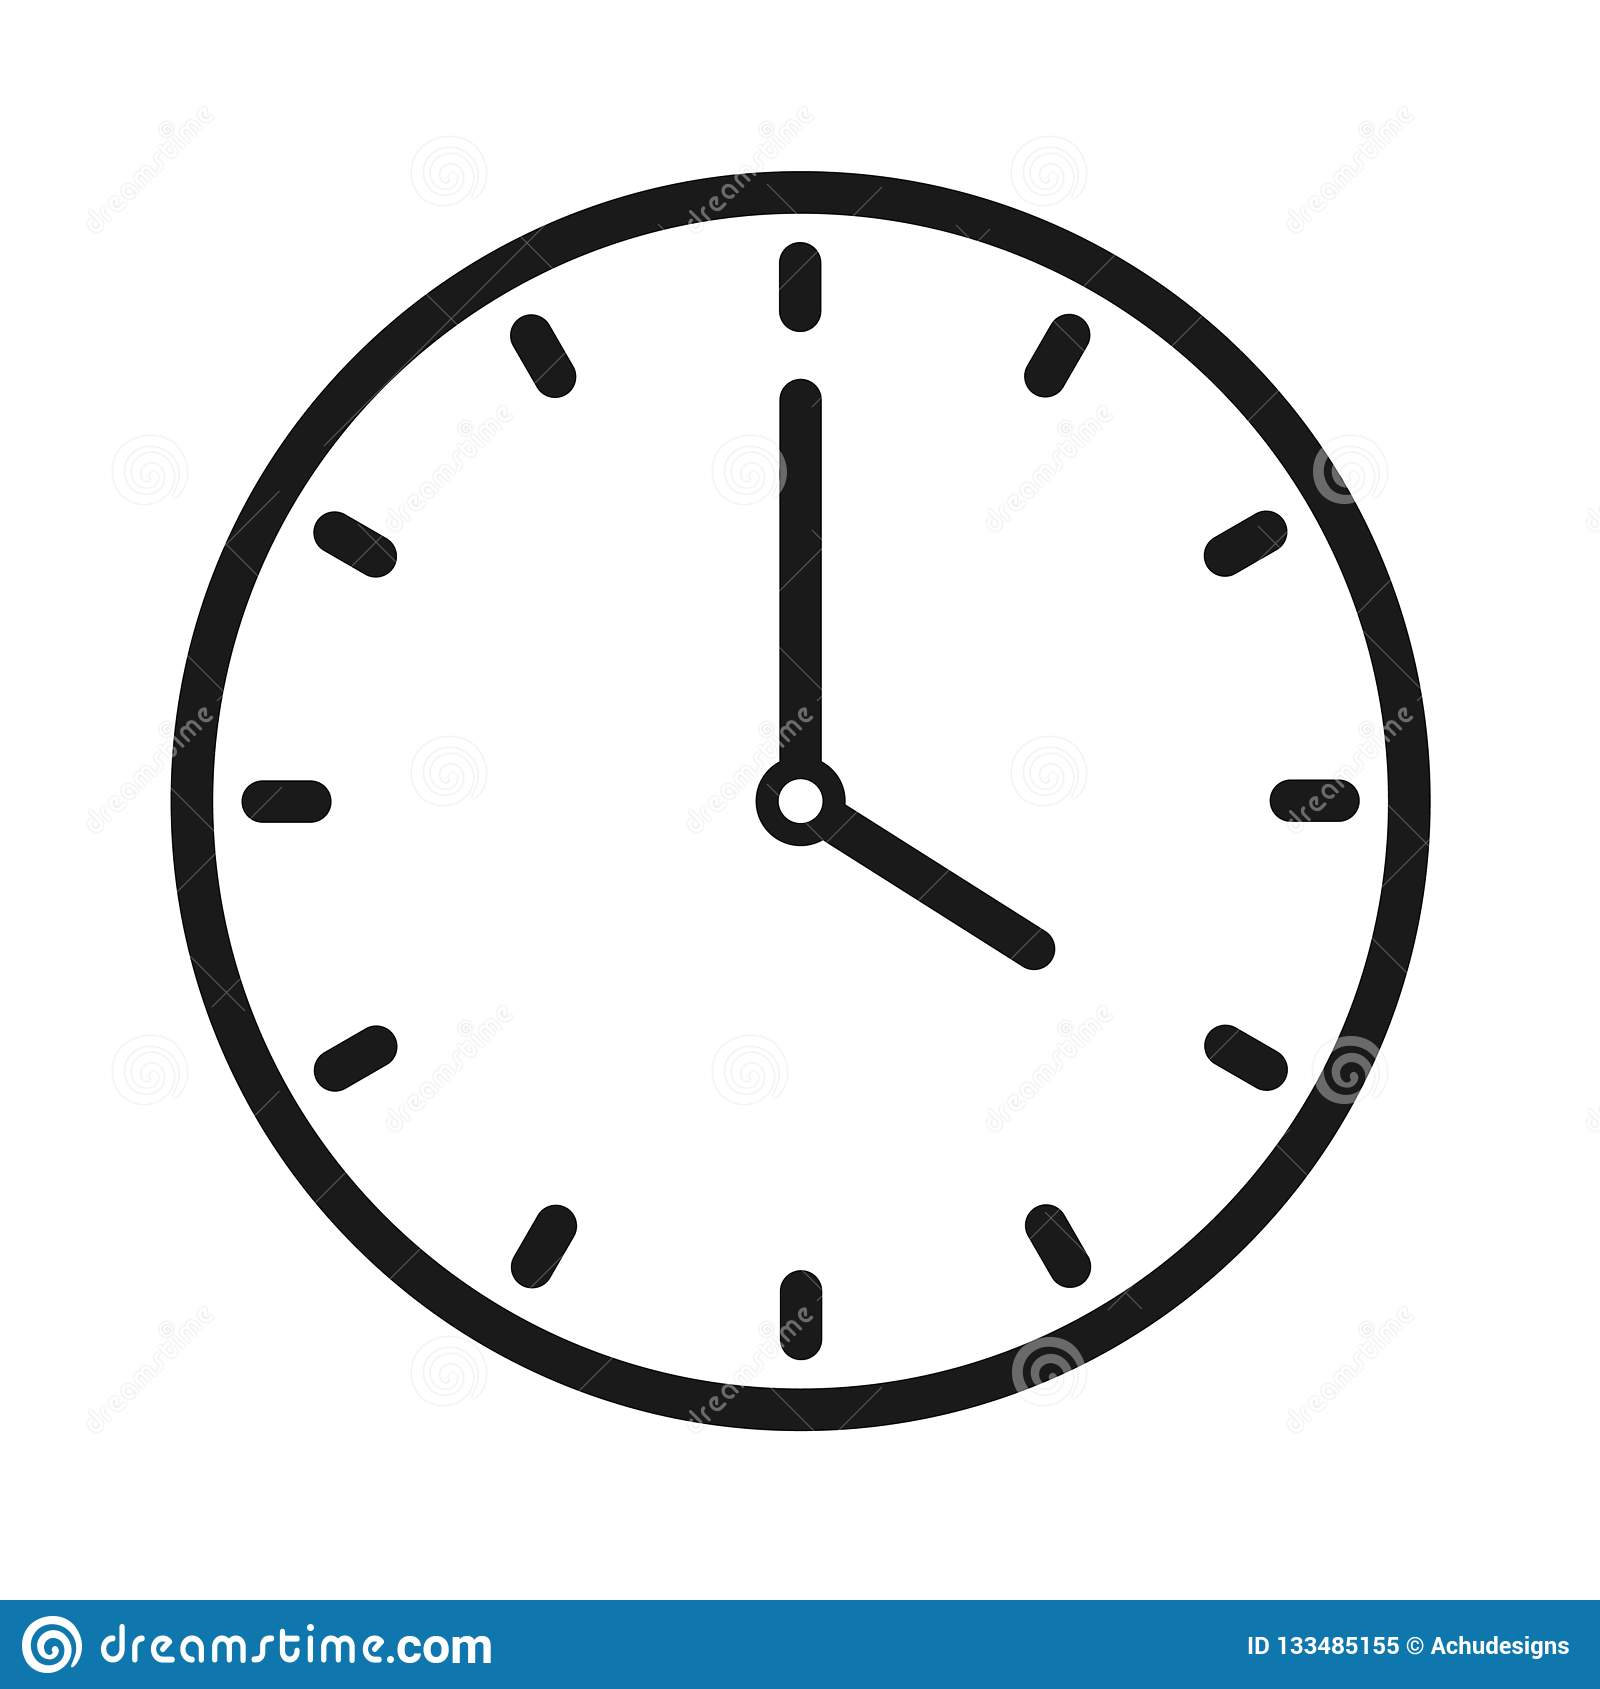 Clock icon stock vector  Illustration of flat, close - 133485155